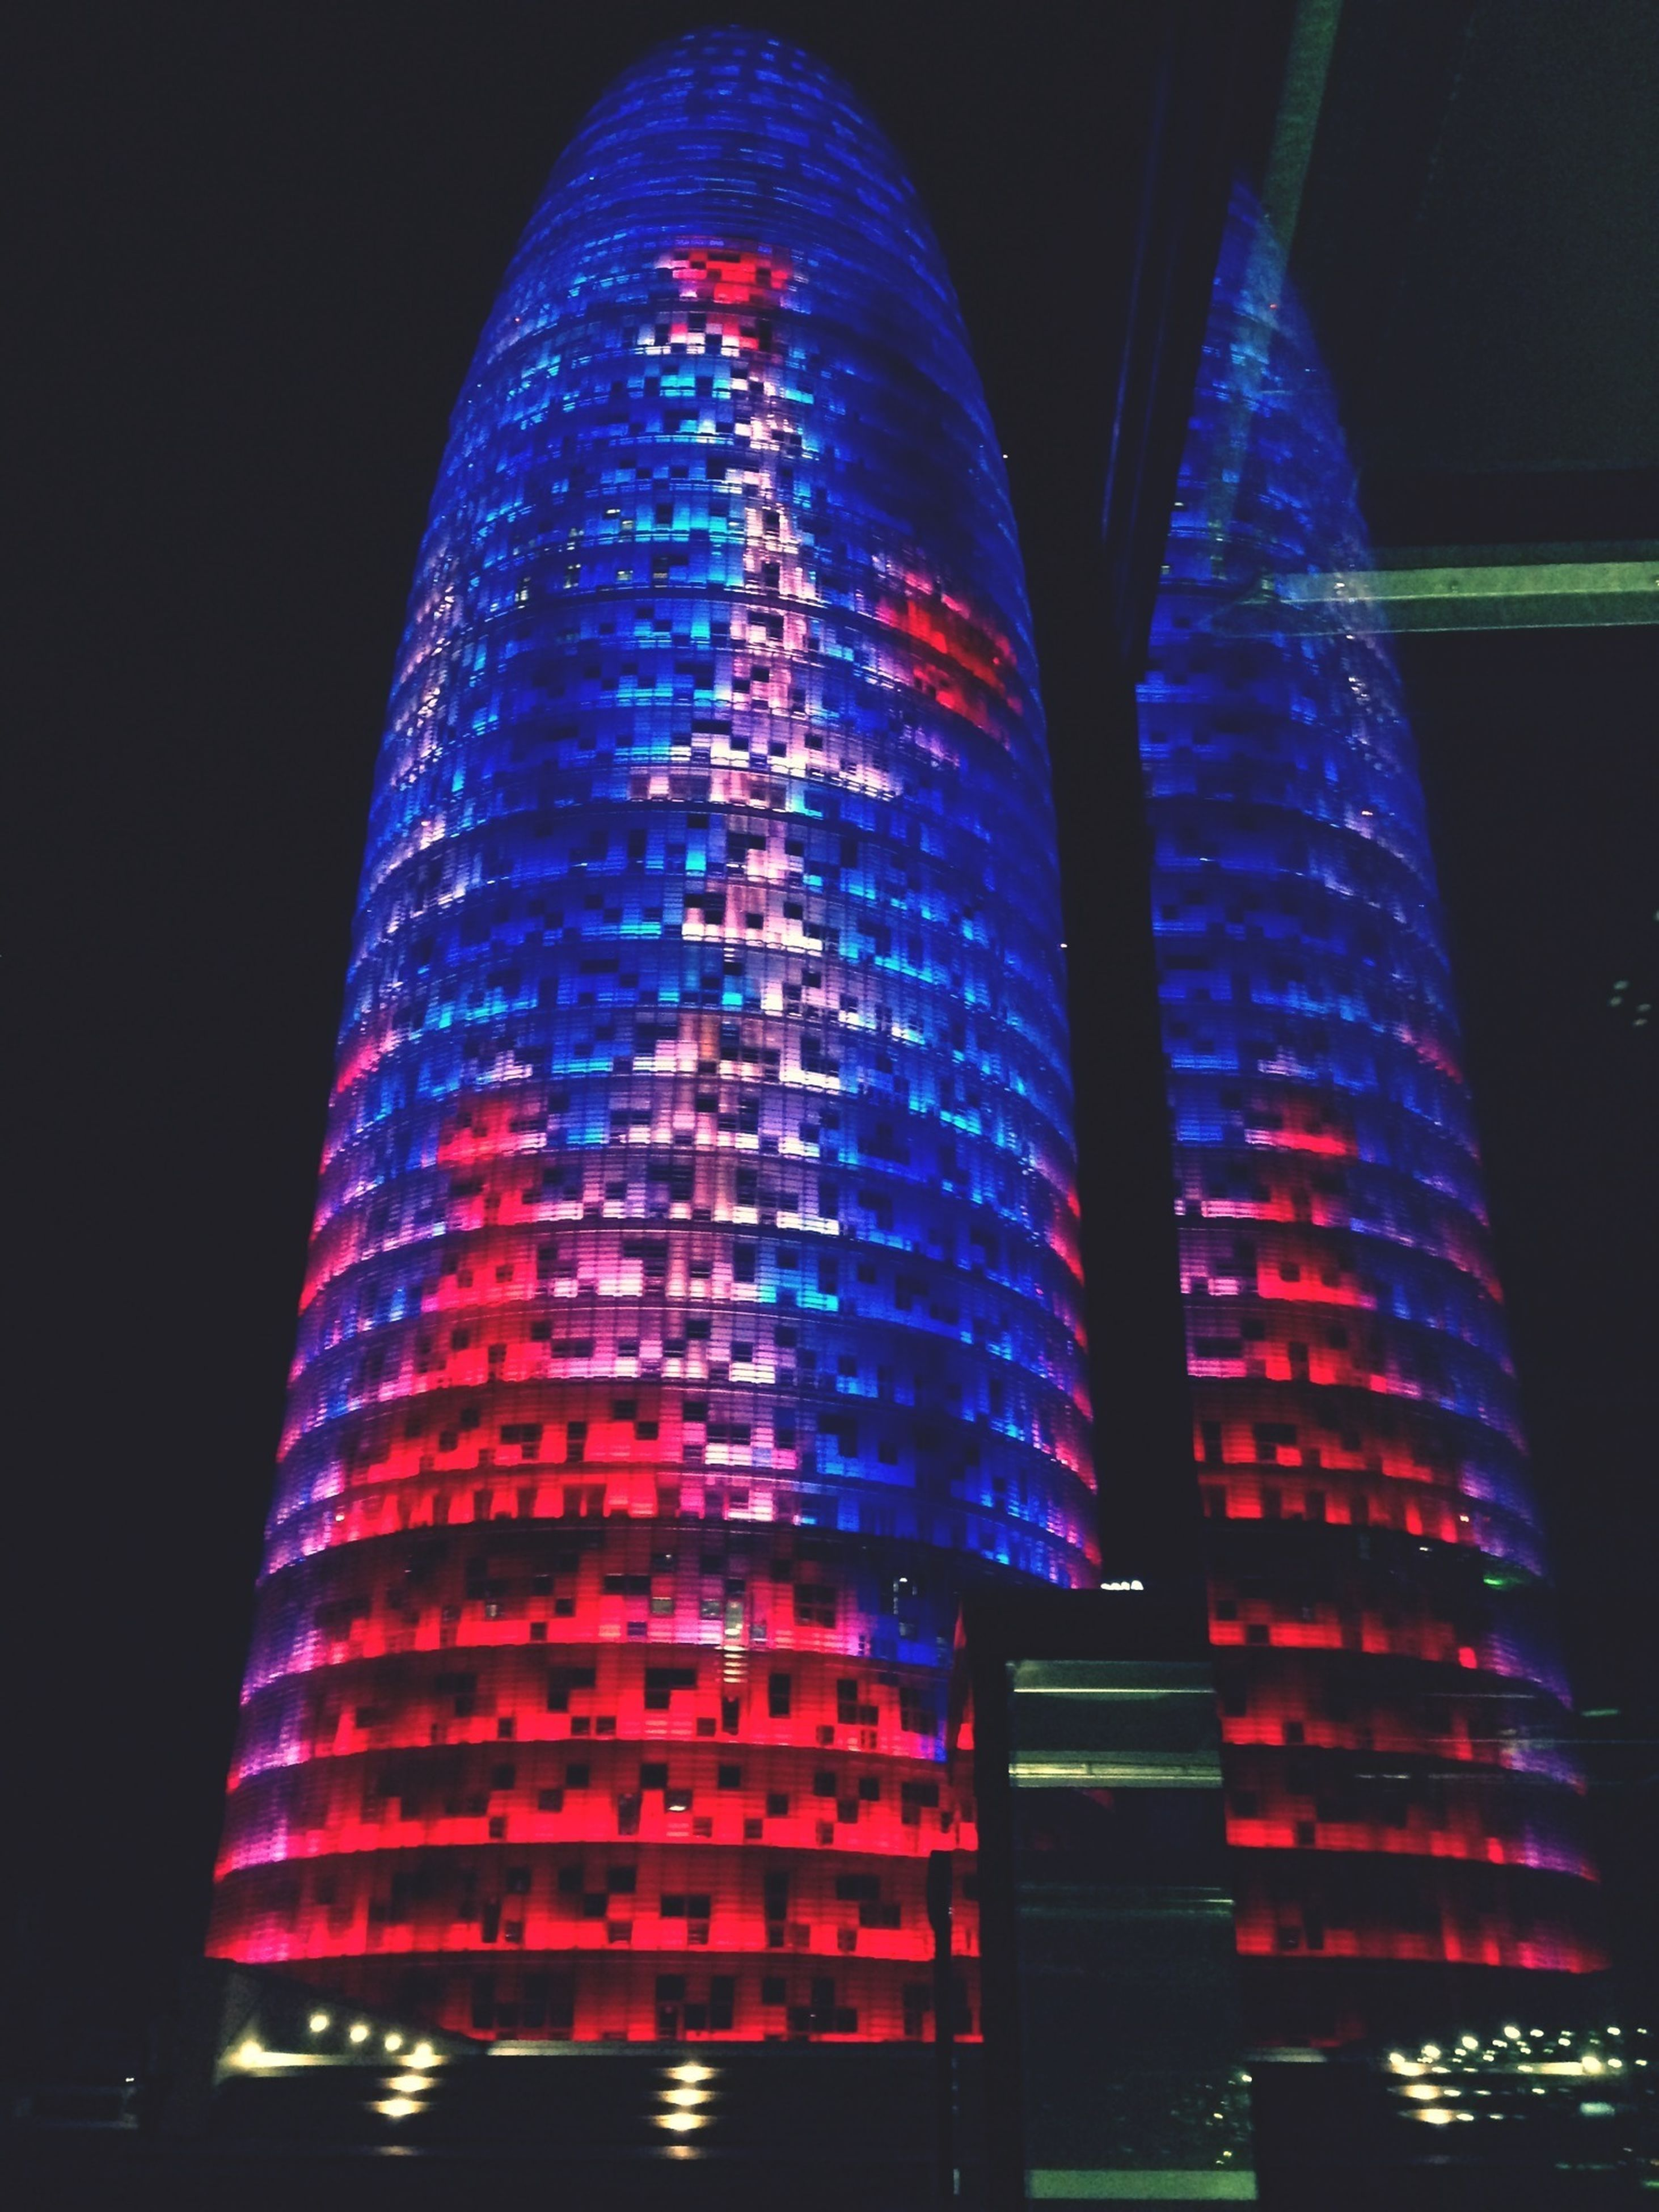 illuminated, night, architecture, building exterior, low angle view, built structure, red, modern, city, multi colored, lighting equipment, no people, reflection, pattern, glowing, skyscraper, tall - high, tower, light - natural phenomenon, outdoors